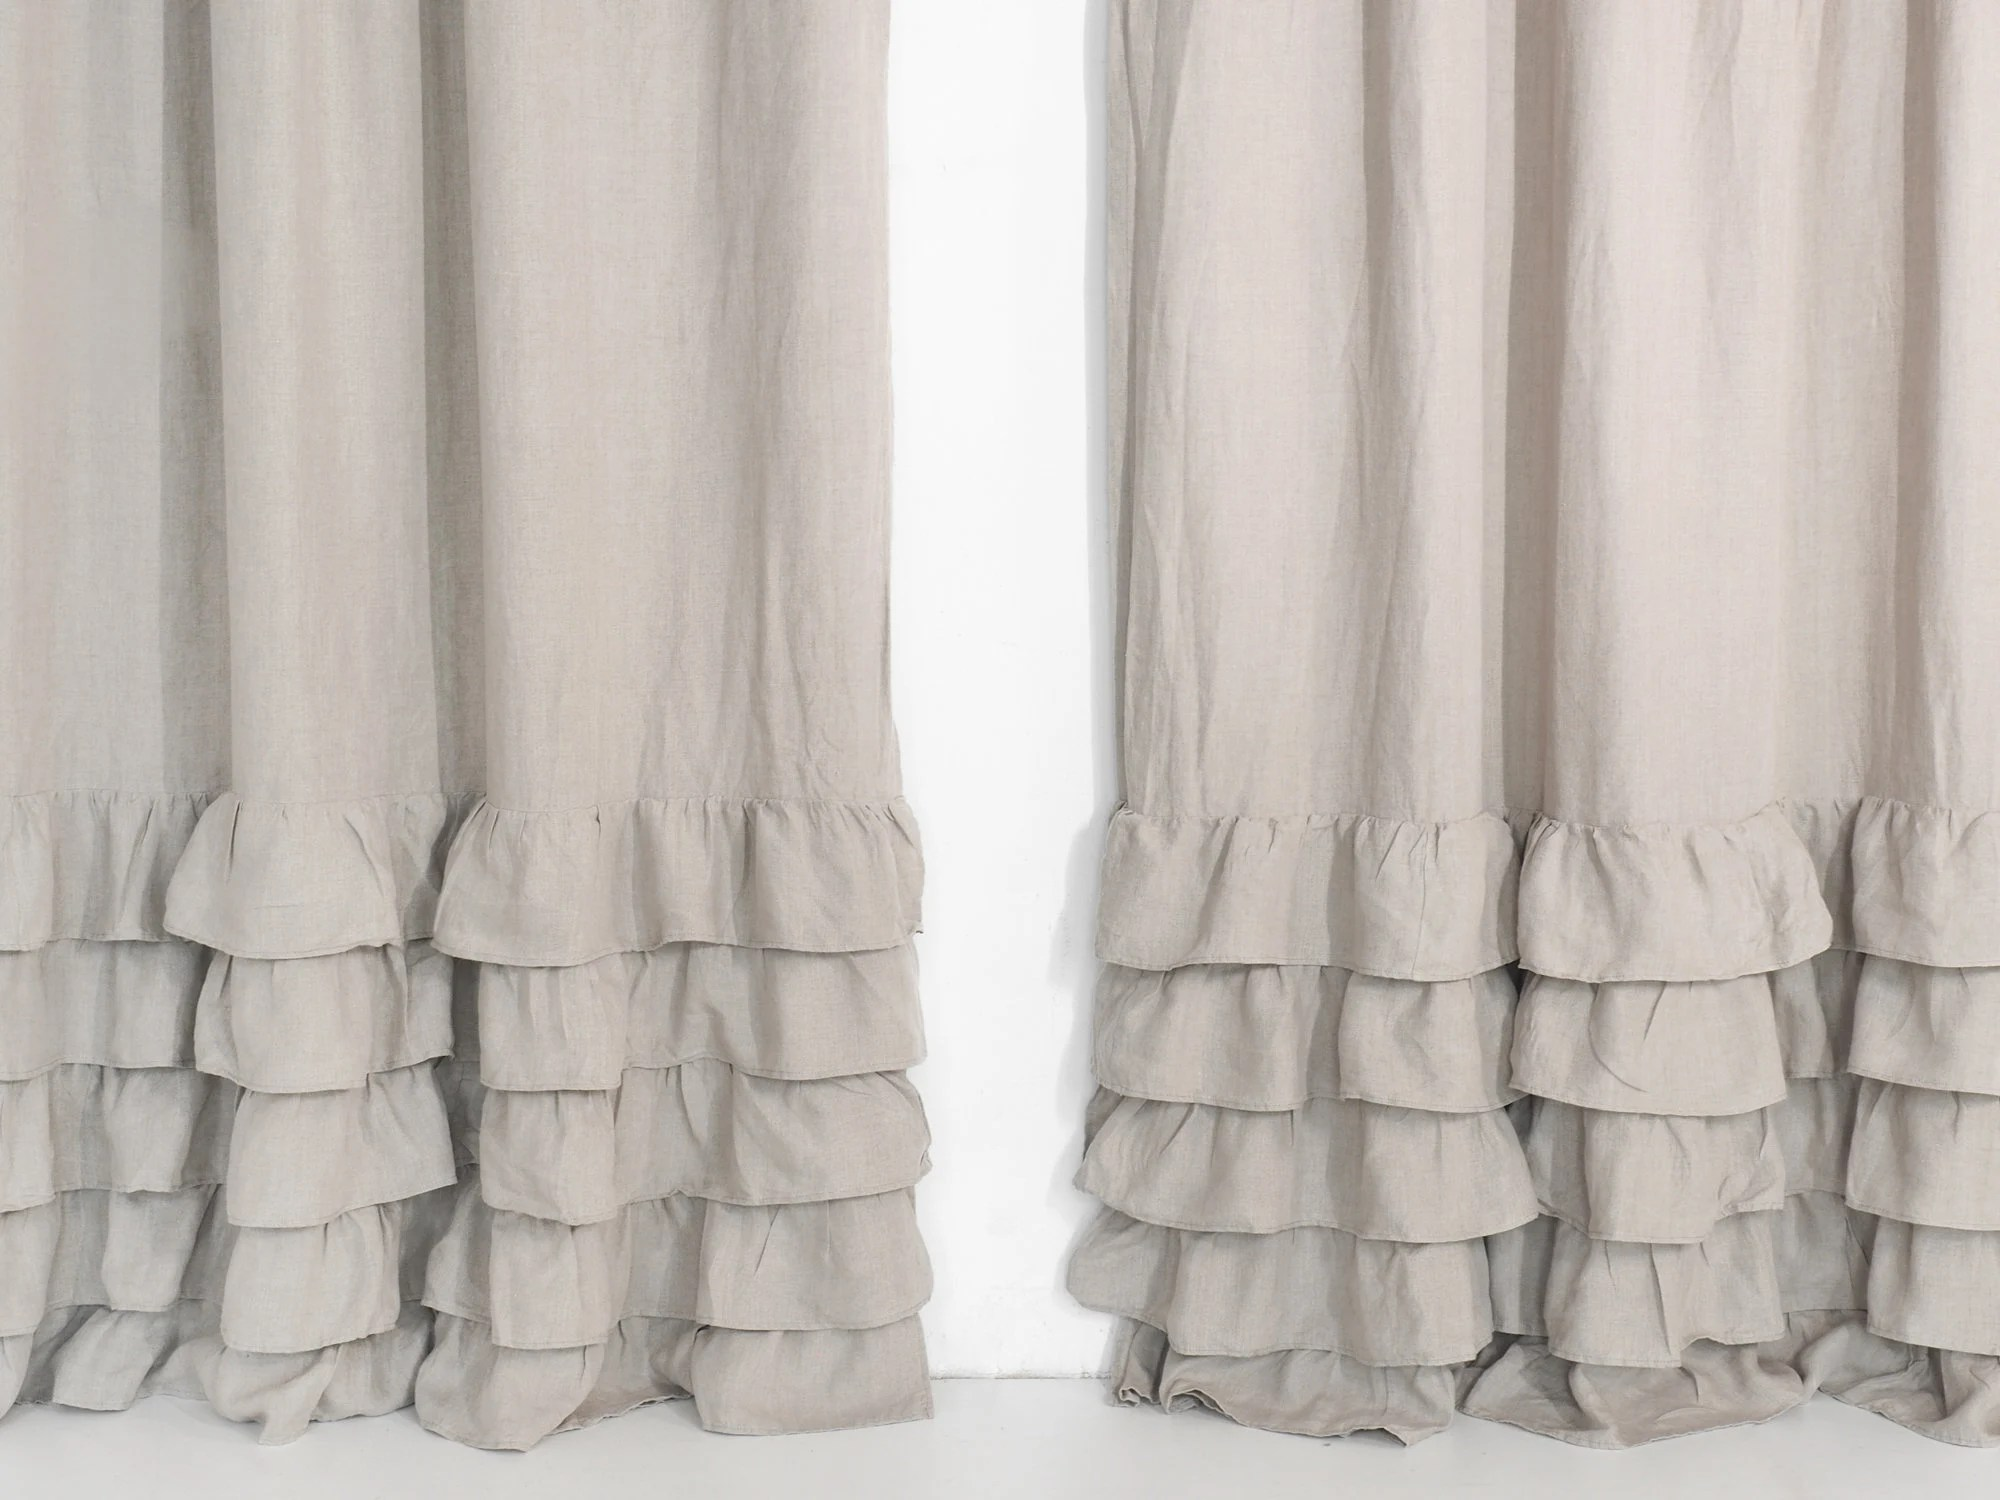 Ruffle Curtain Panel Linen Ruffled Curtain Panel Curtain Panel With Ruffles 100 Linen Natural Linen Curtain